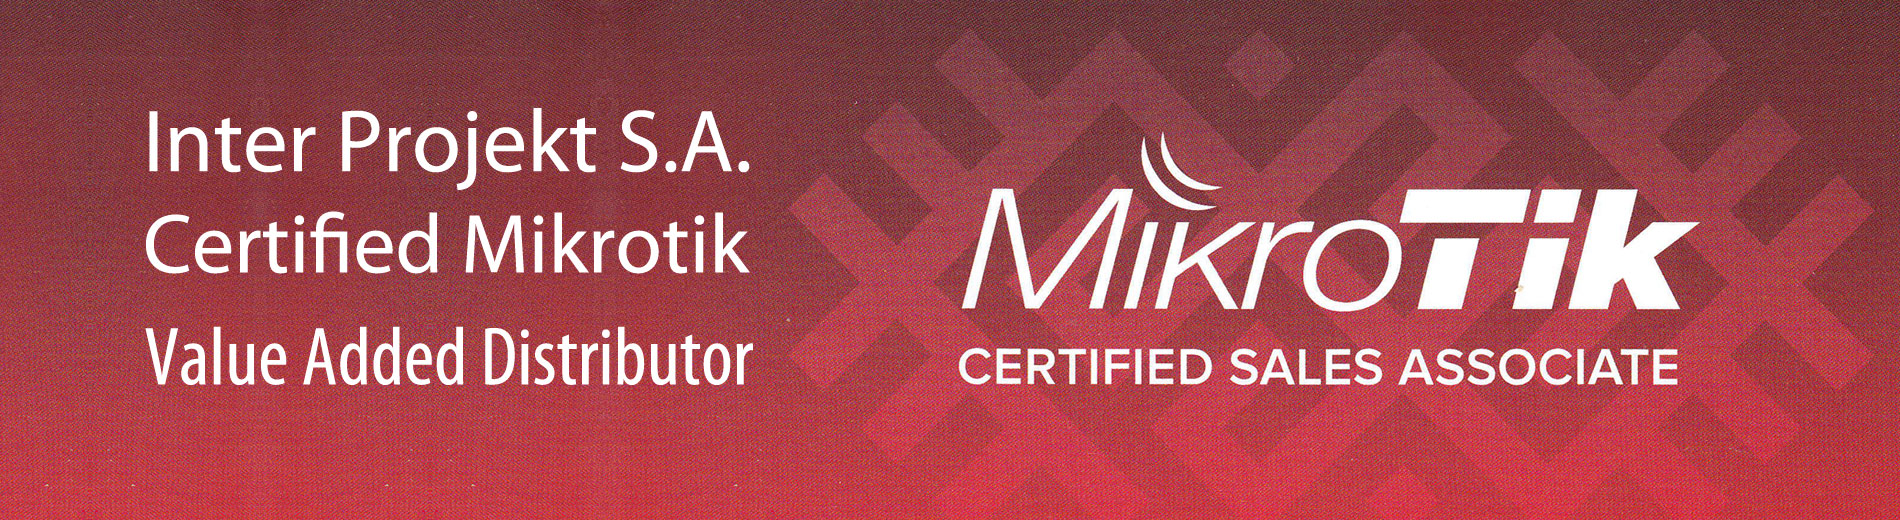 Mikrotik Certified Sales Associate